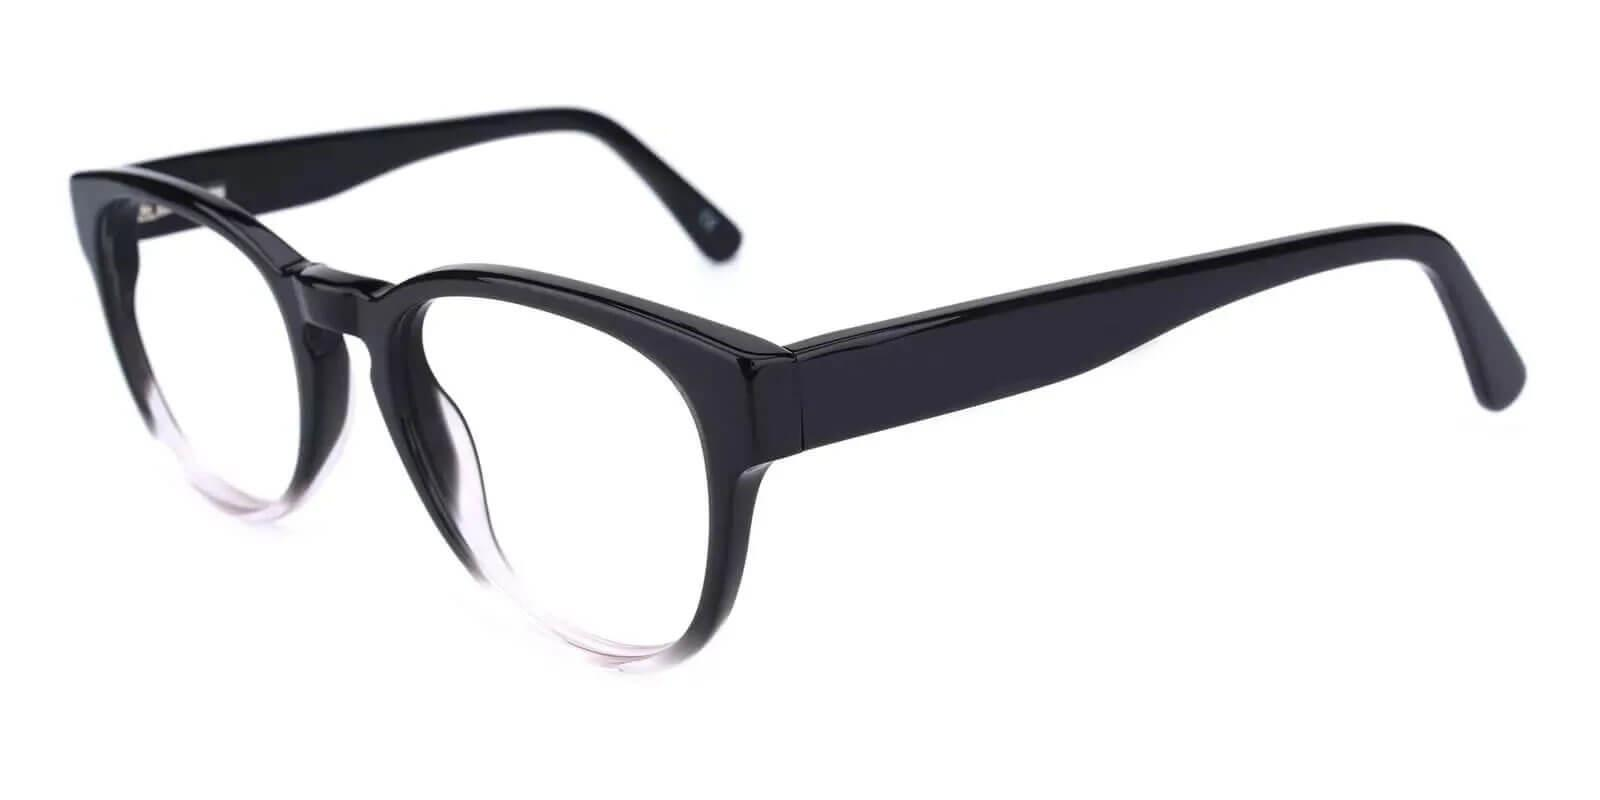 Aurora Translucent Acetate Eyeglasses , Fashion , SpringHinges , UniversalBridgeFit Frames from ABBE Glasses